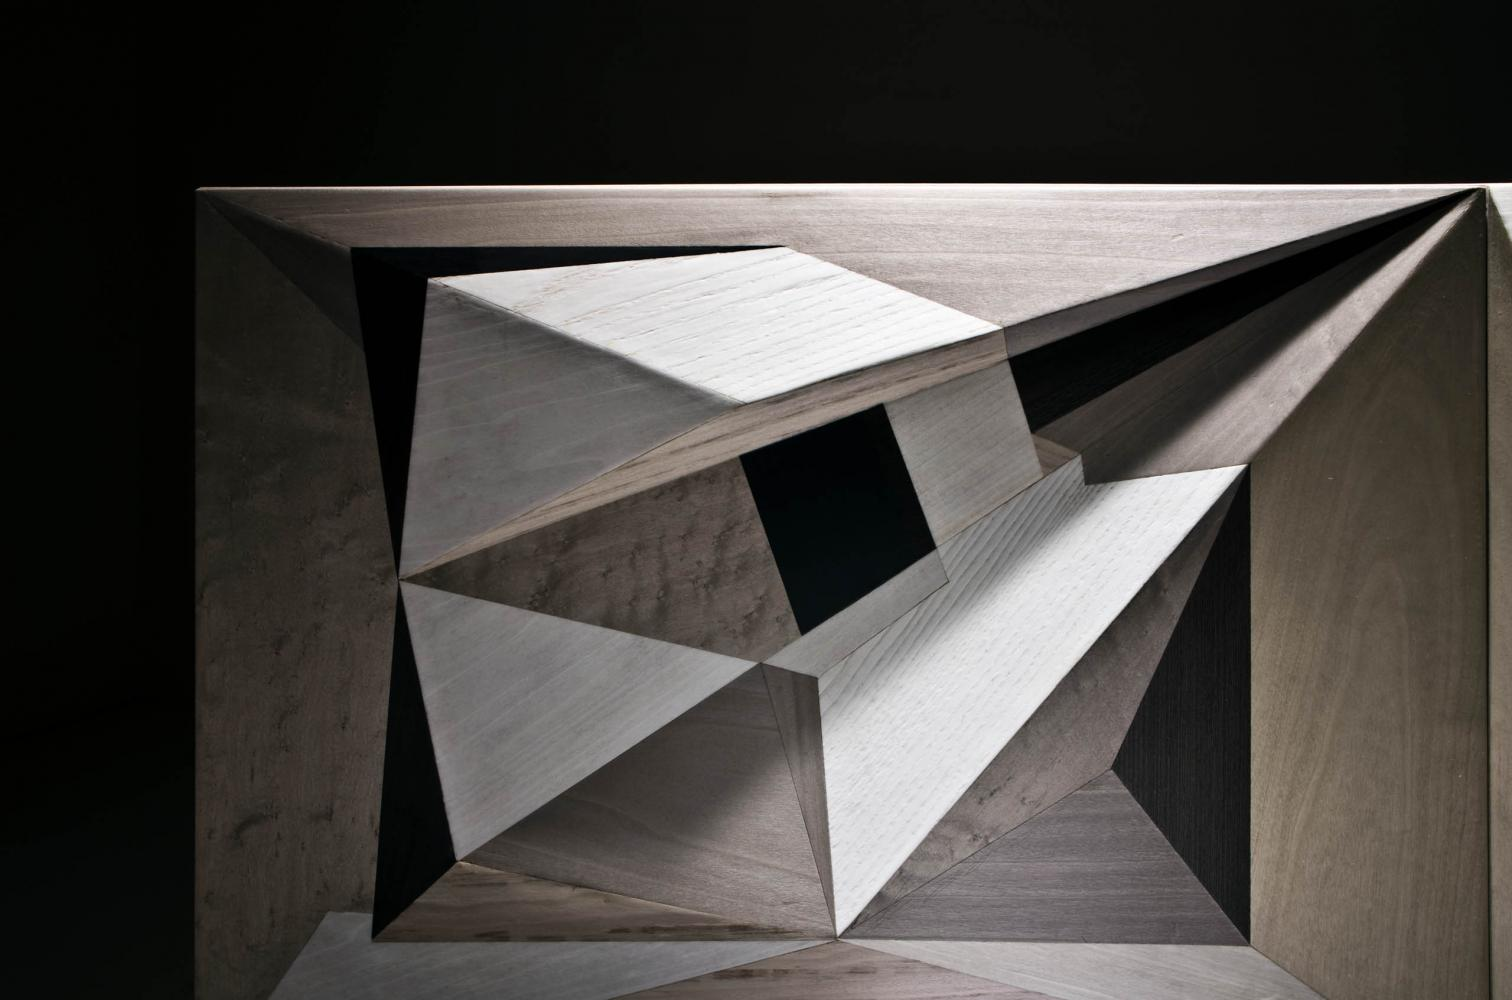 laurameroni intarsia luxury limited edition collection modern design sideboard by marcello Jori realized with inlay